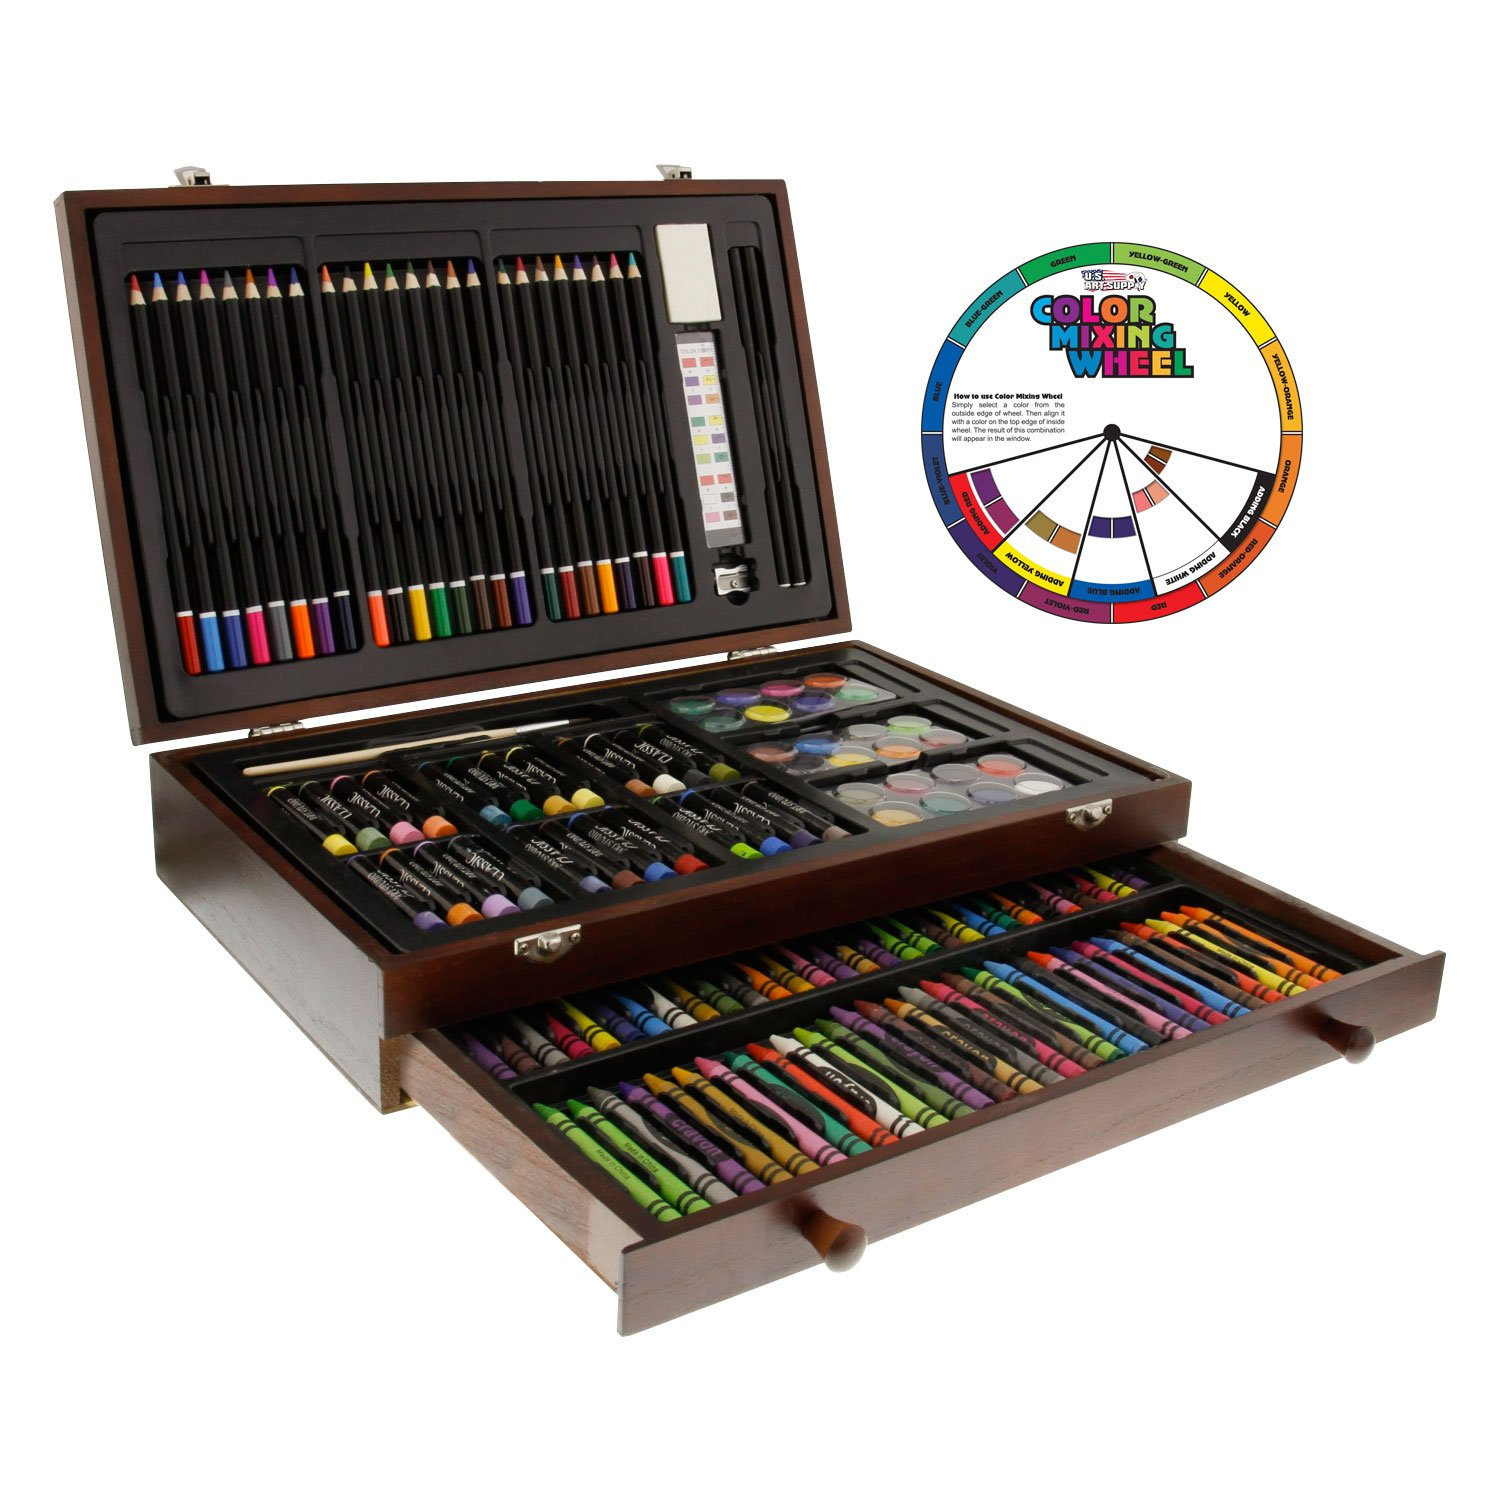 U.S. Art Supply 143 Piece-Mega Wood Box Art, Painting & Drawing Set, Now Contains a Bonus Color Mixing Wheel by US Art Supply